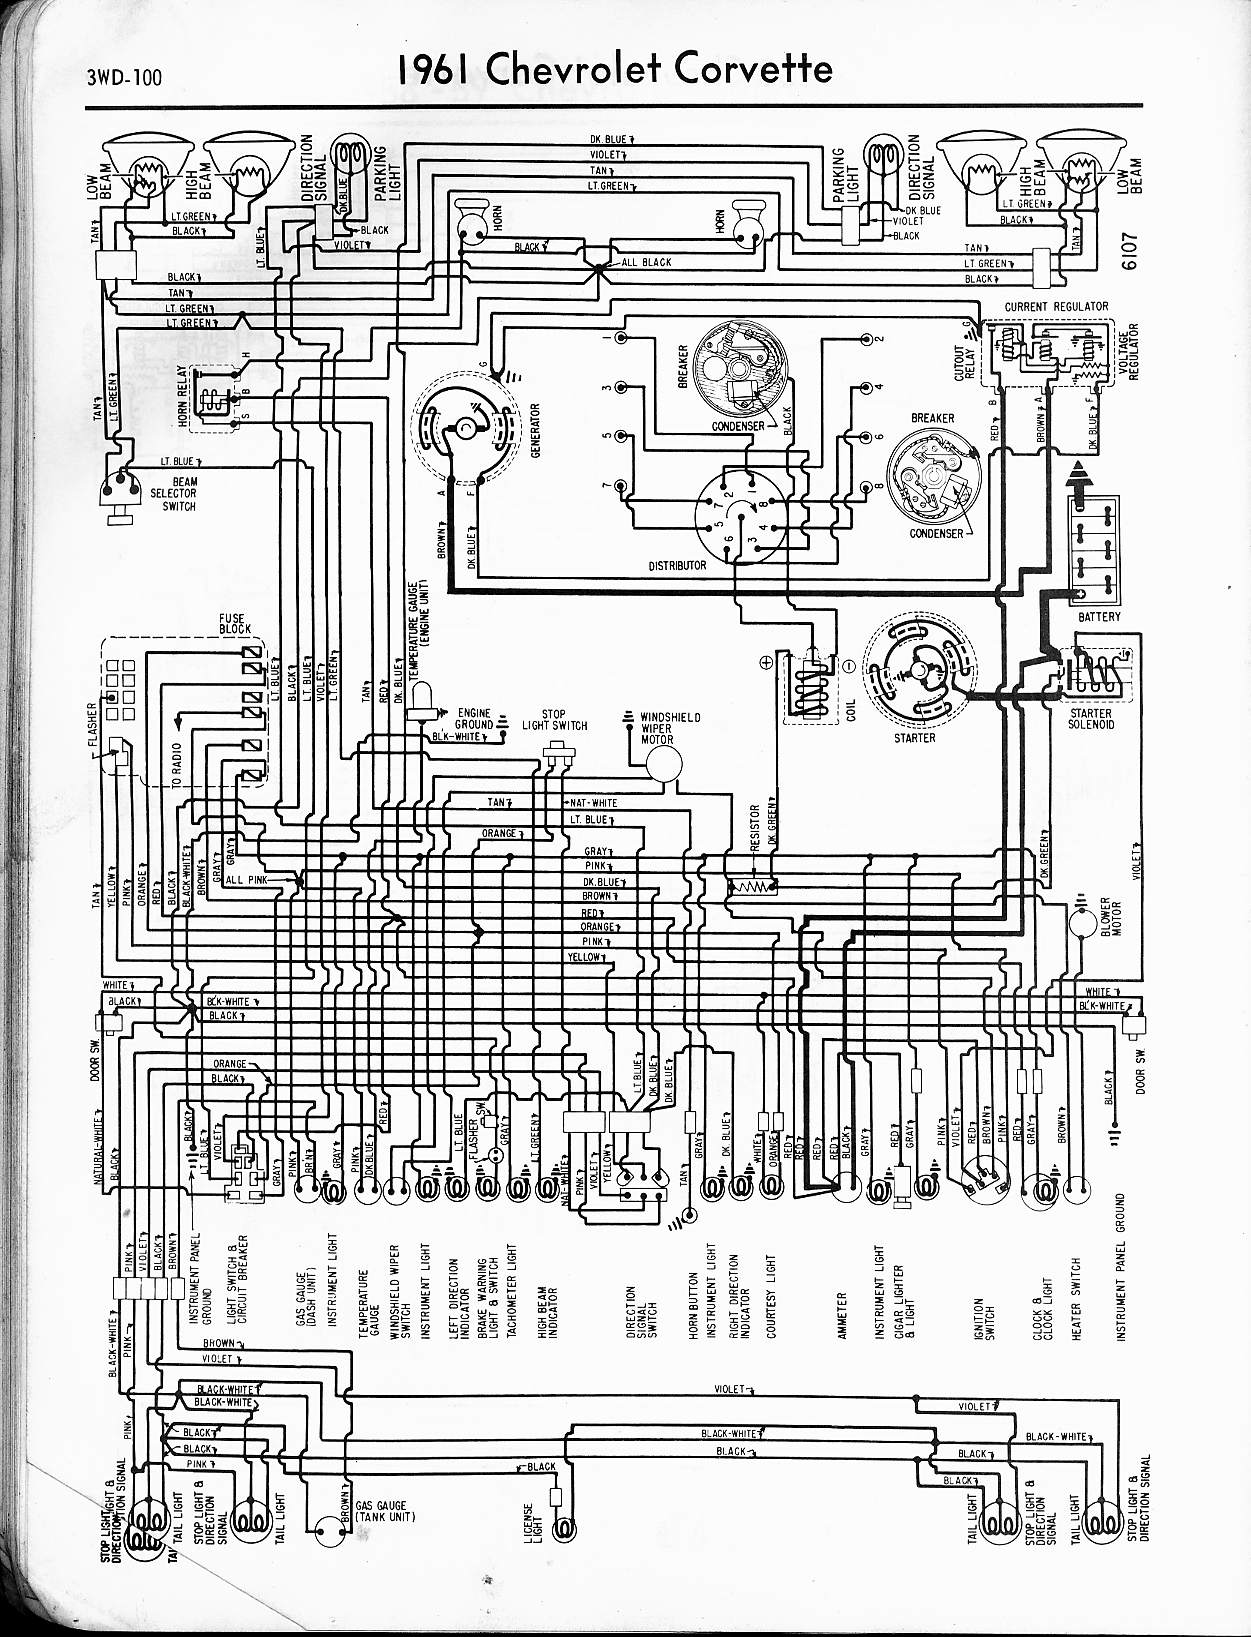 1966 Corvair Engine Harness Diagram - Trusted Wiring Diagram •